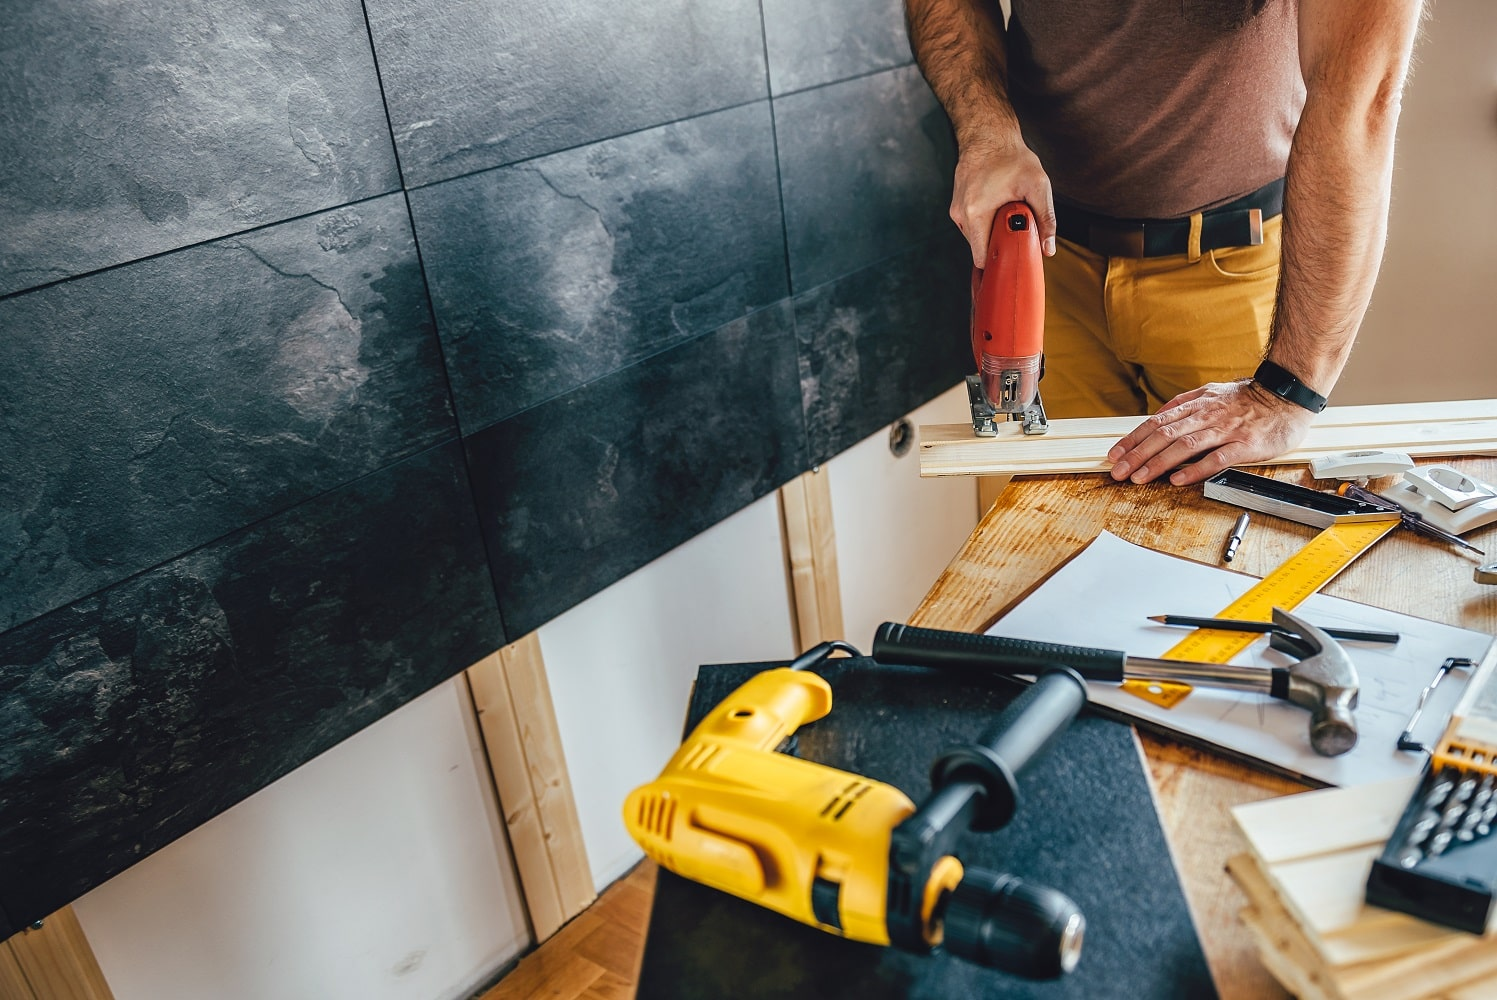 Man cutting piece of wood on the table with electric Jigsaw at home